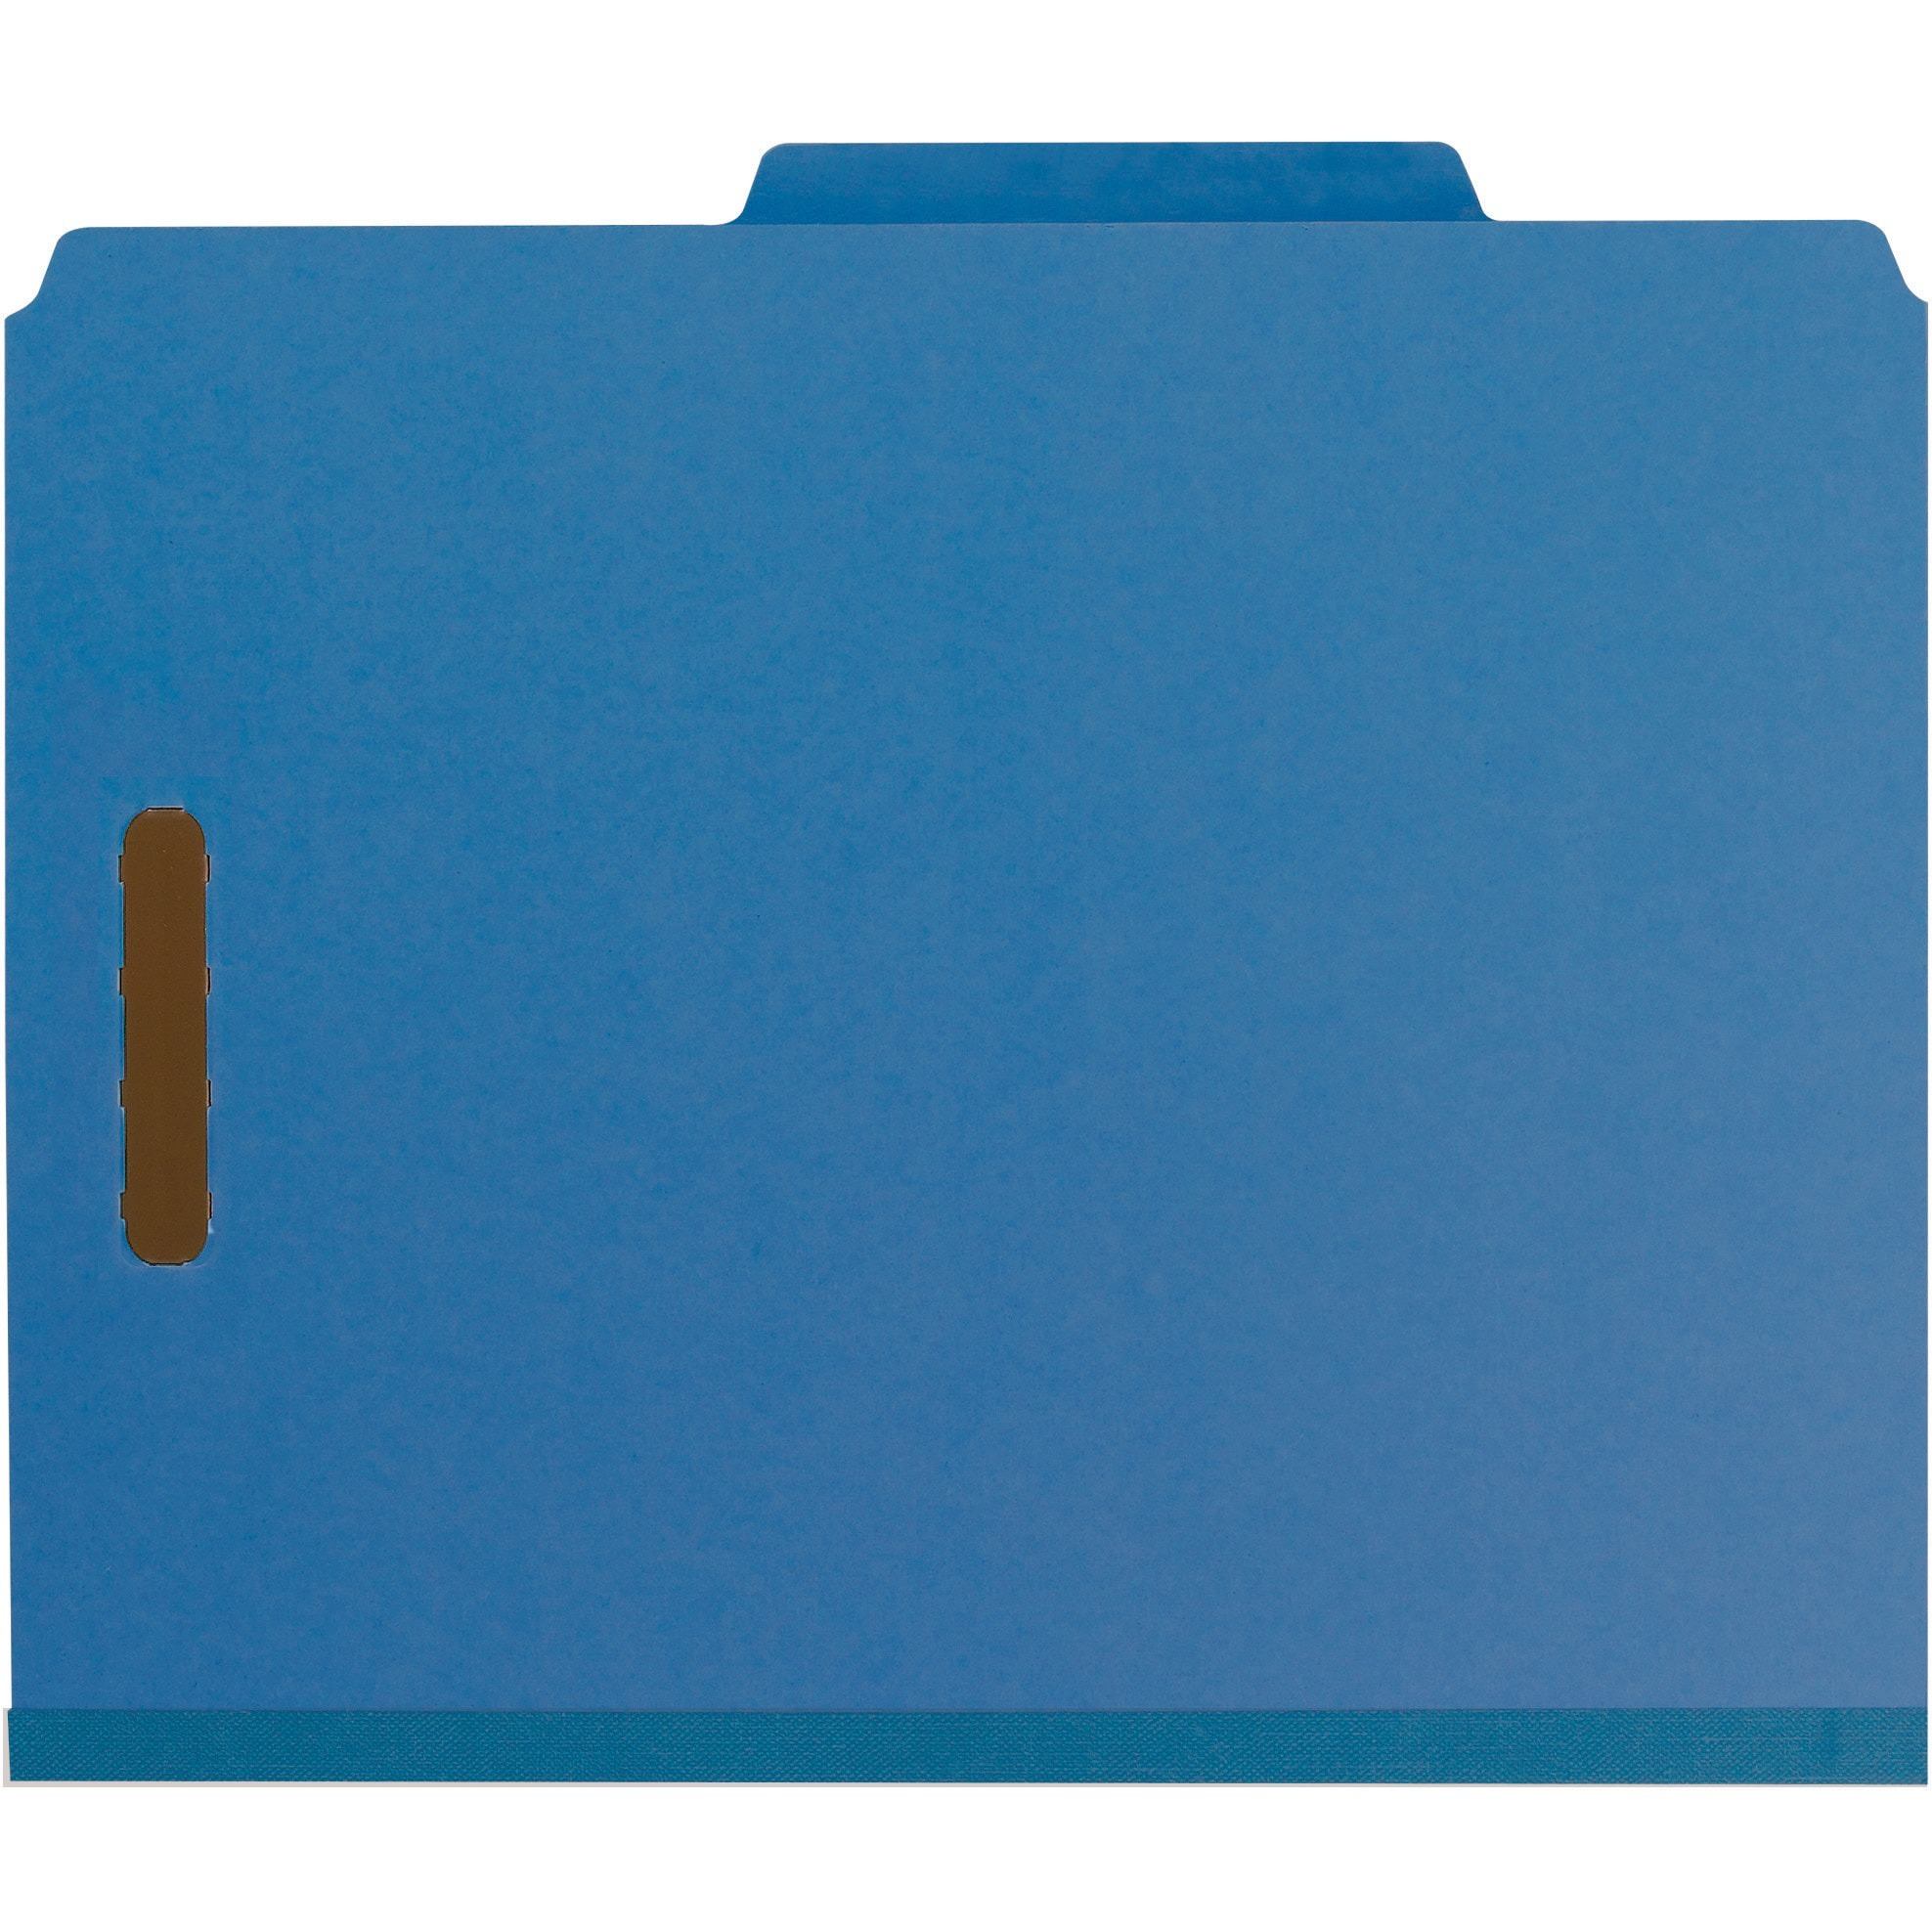 Smead, SMD14062, Recycled Pressboard 2-Divider Classification Folders, 10 / Box, Dark Blue